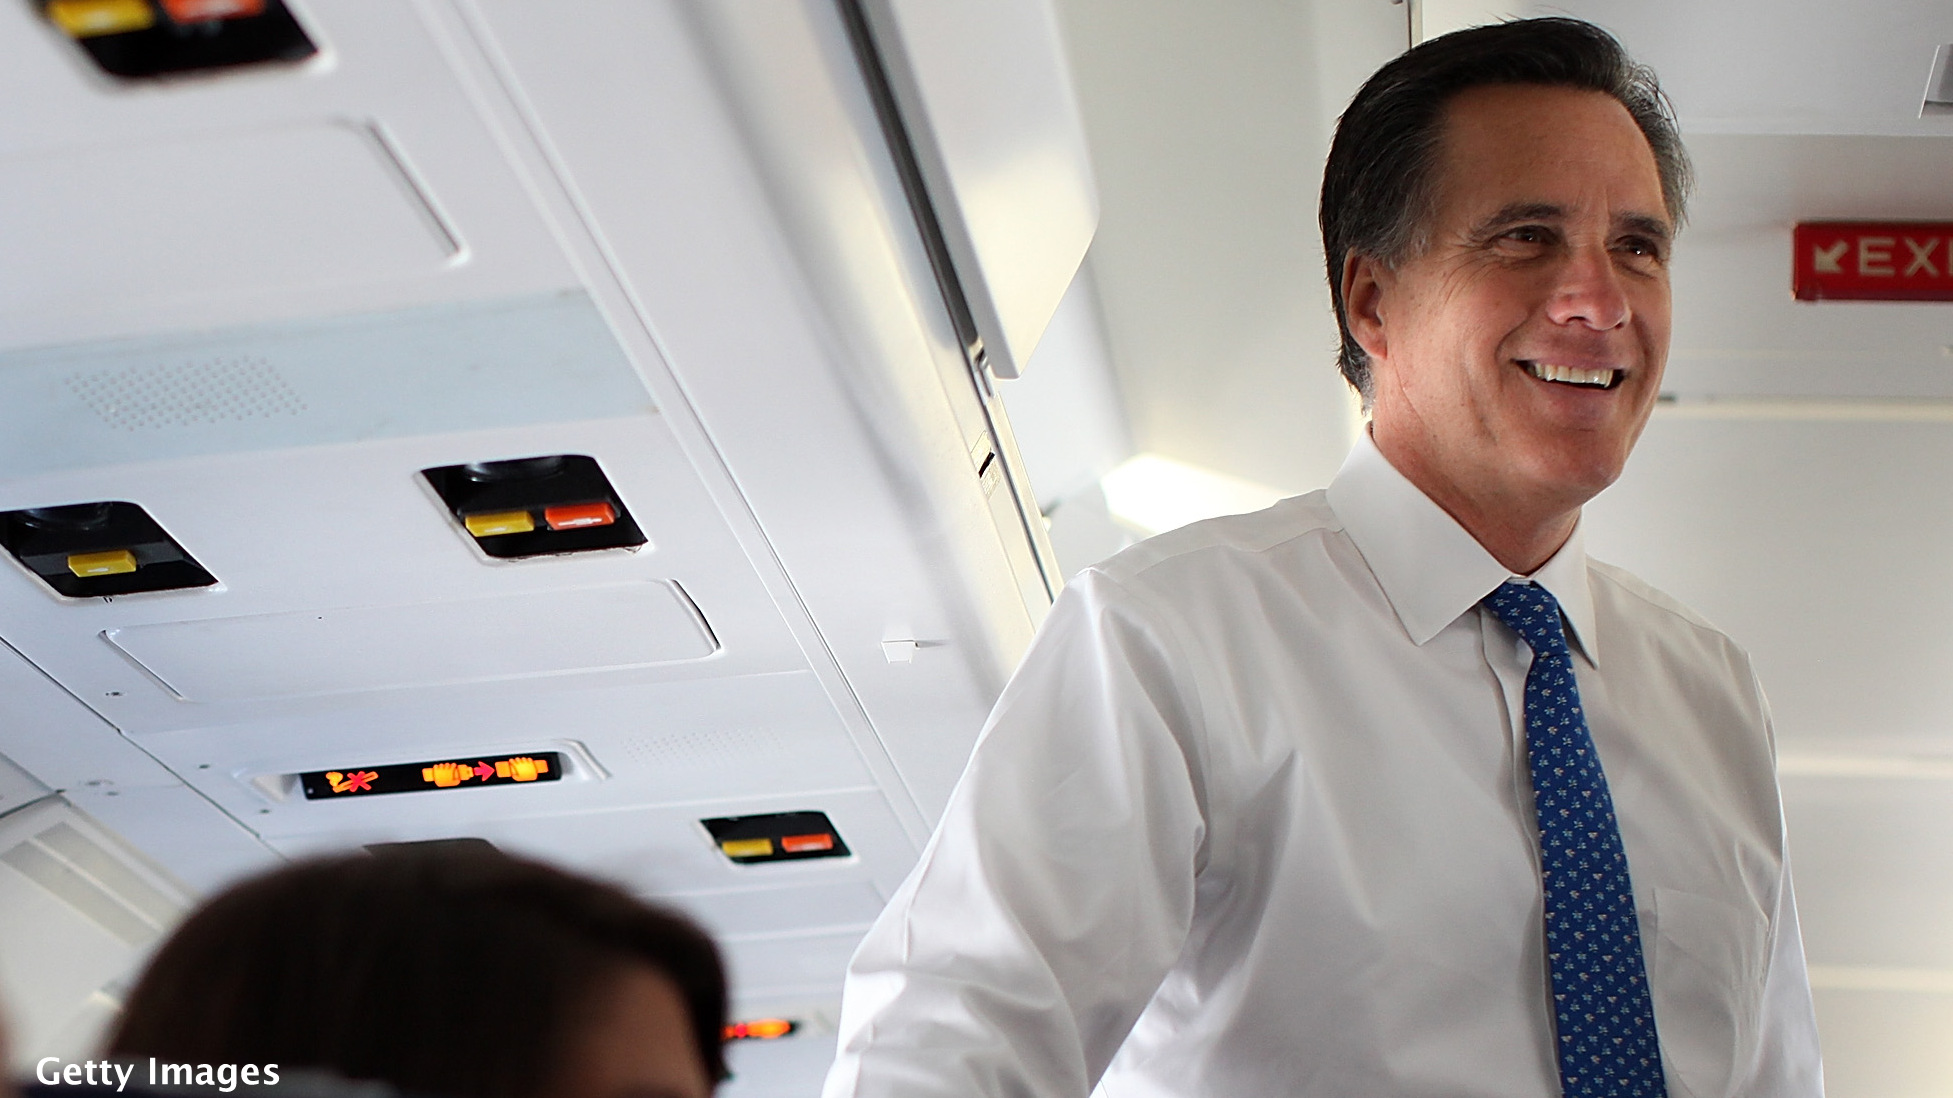 BREAKING: Romney wins Vermont primary, CNN projects